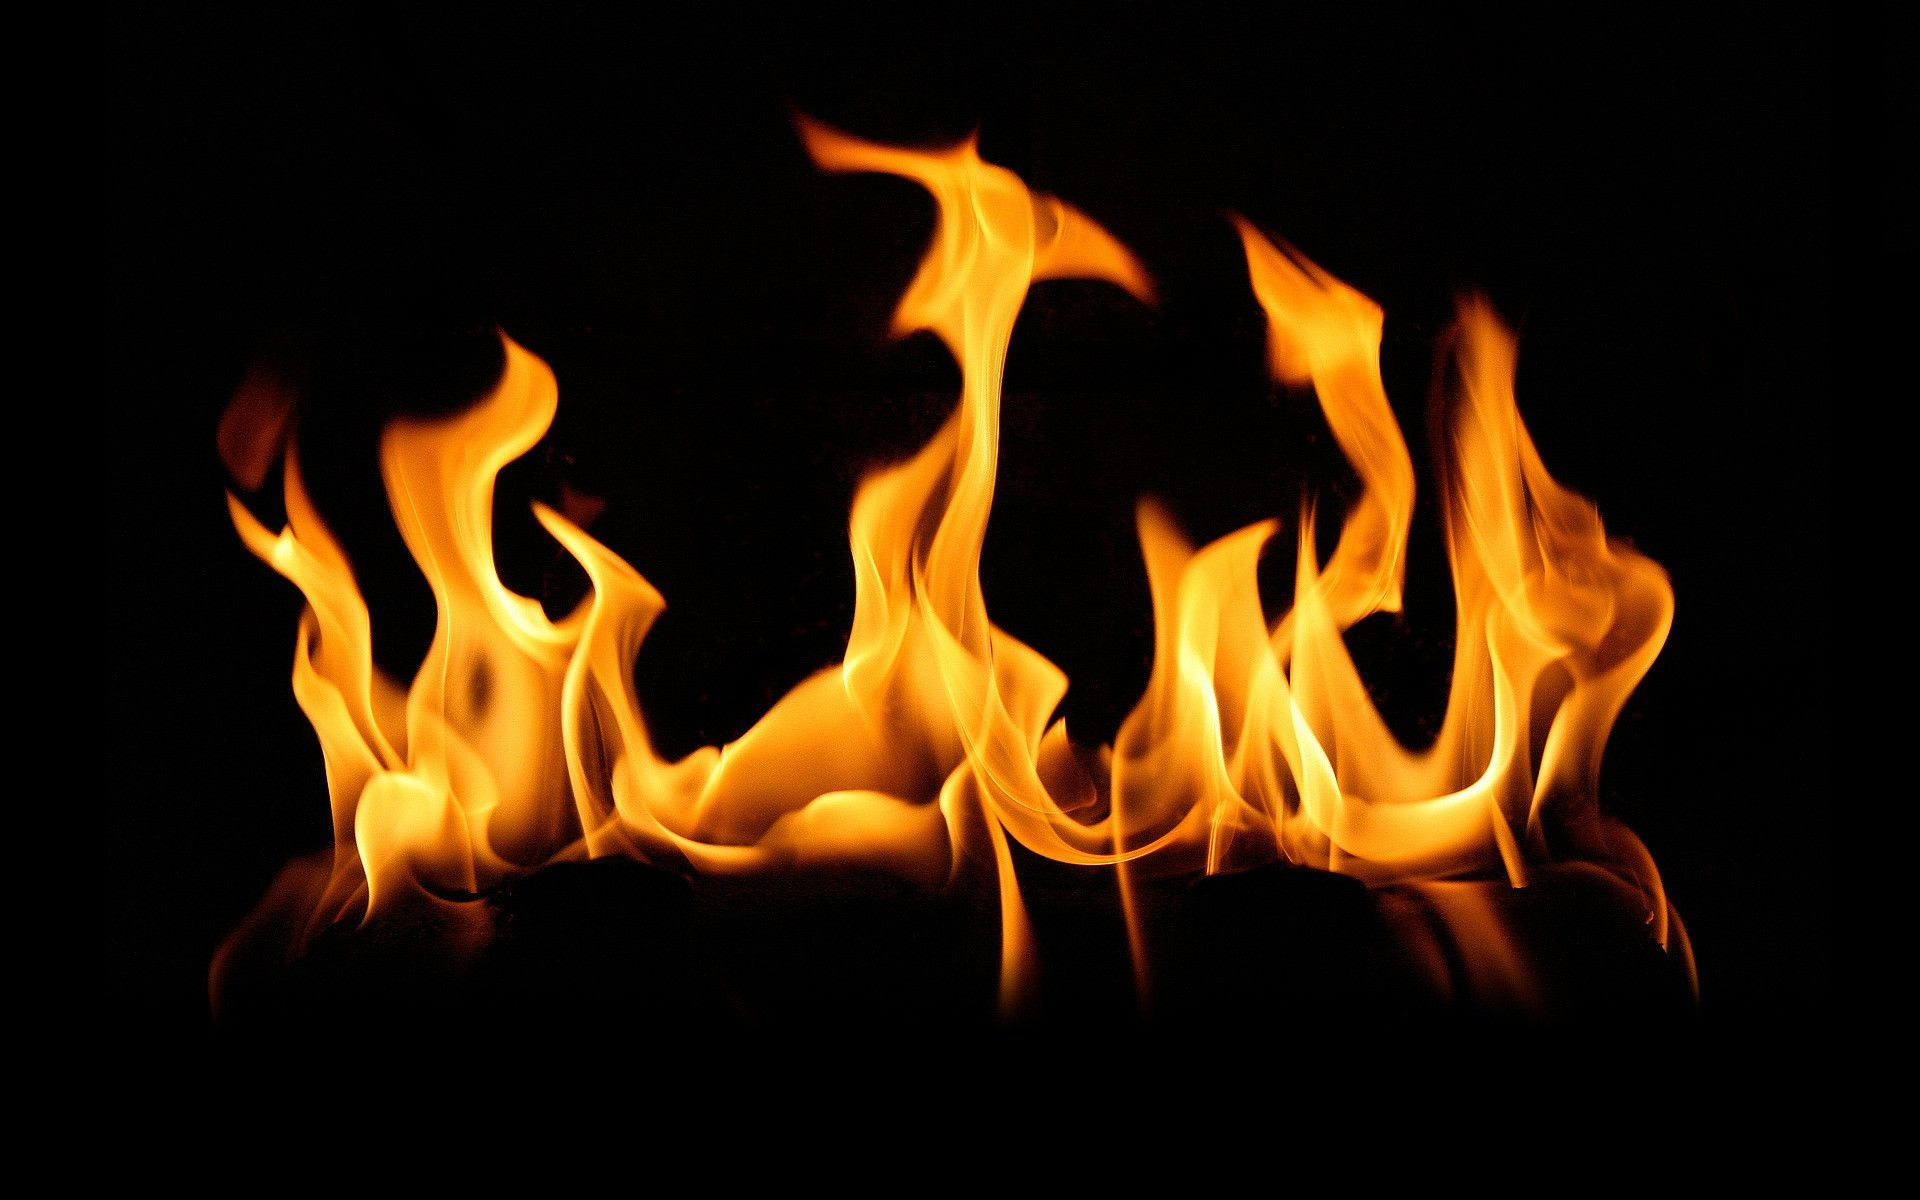 fire images free download